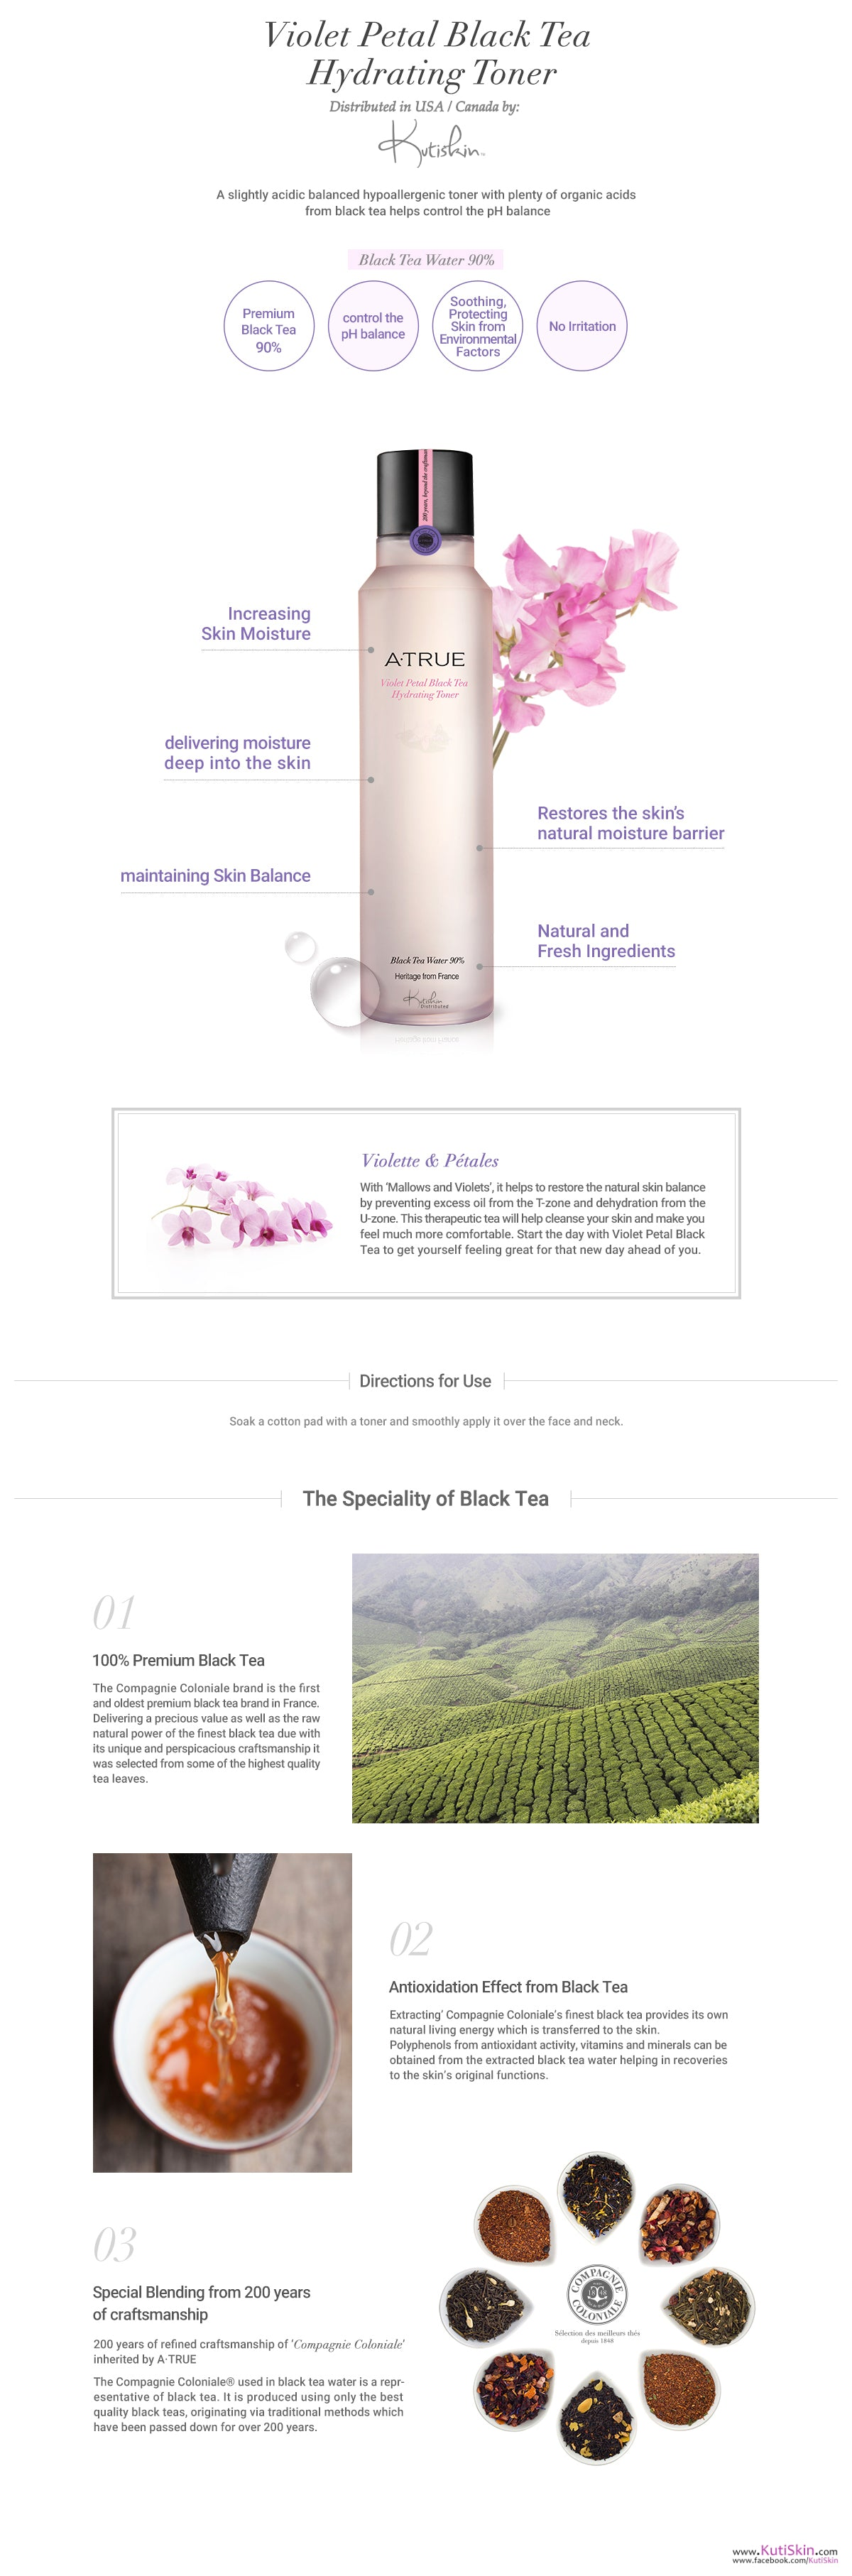 KutiSkin - ATRUE Violet Petal Black Tea Hydrating Toner Description Poster